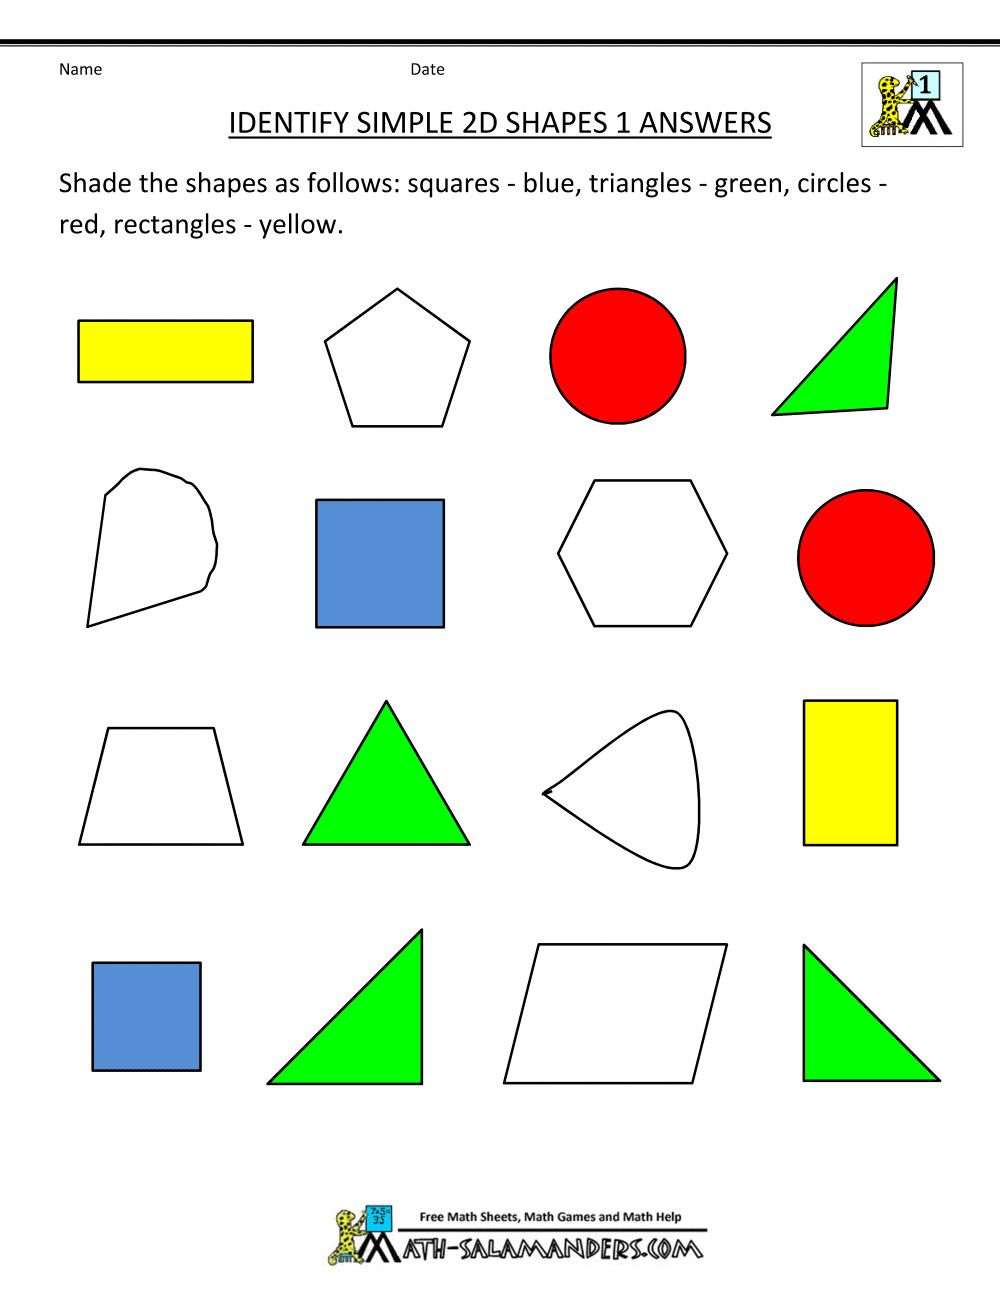 3 2 And 3 Dimensional Shapes Worksheets For First Grade First Grade Geometry In 2020 Geometry Worksheets Shapes Worksheets Free Math Worksheets